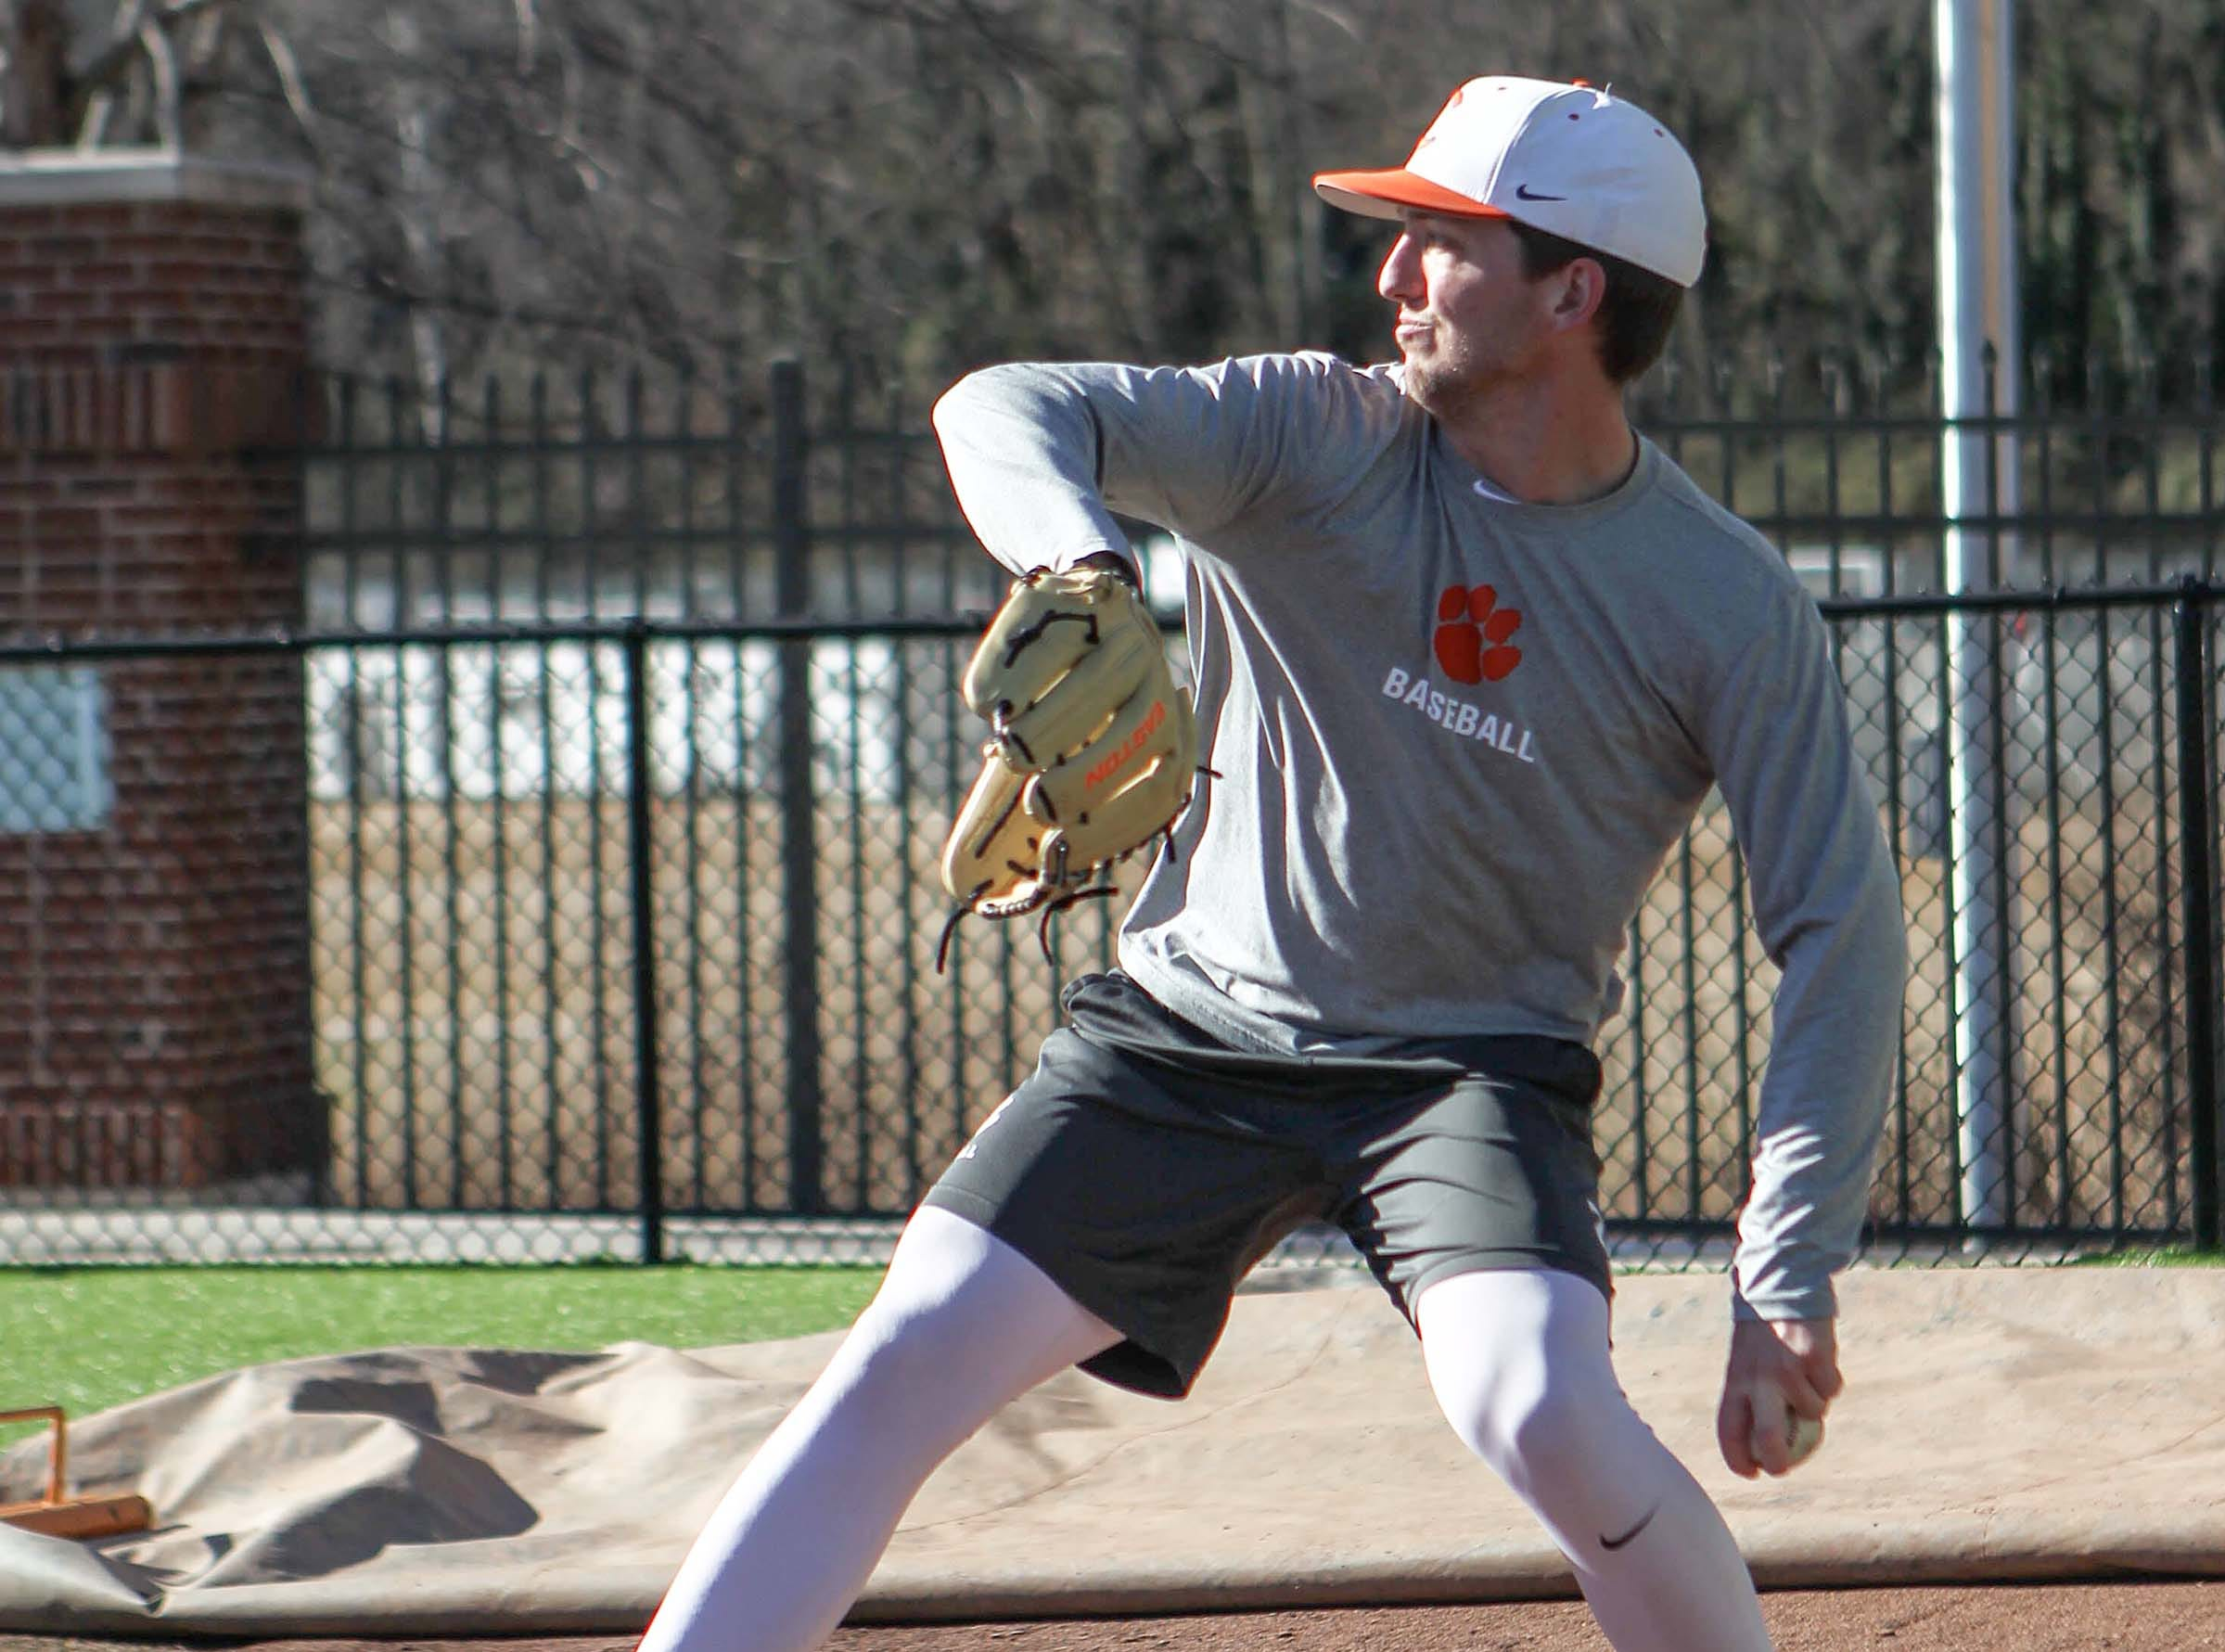 Clemson pitcher Jackson Linley warms up during practice at Doug Kingsmore Stadium in Clemson Friday.